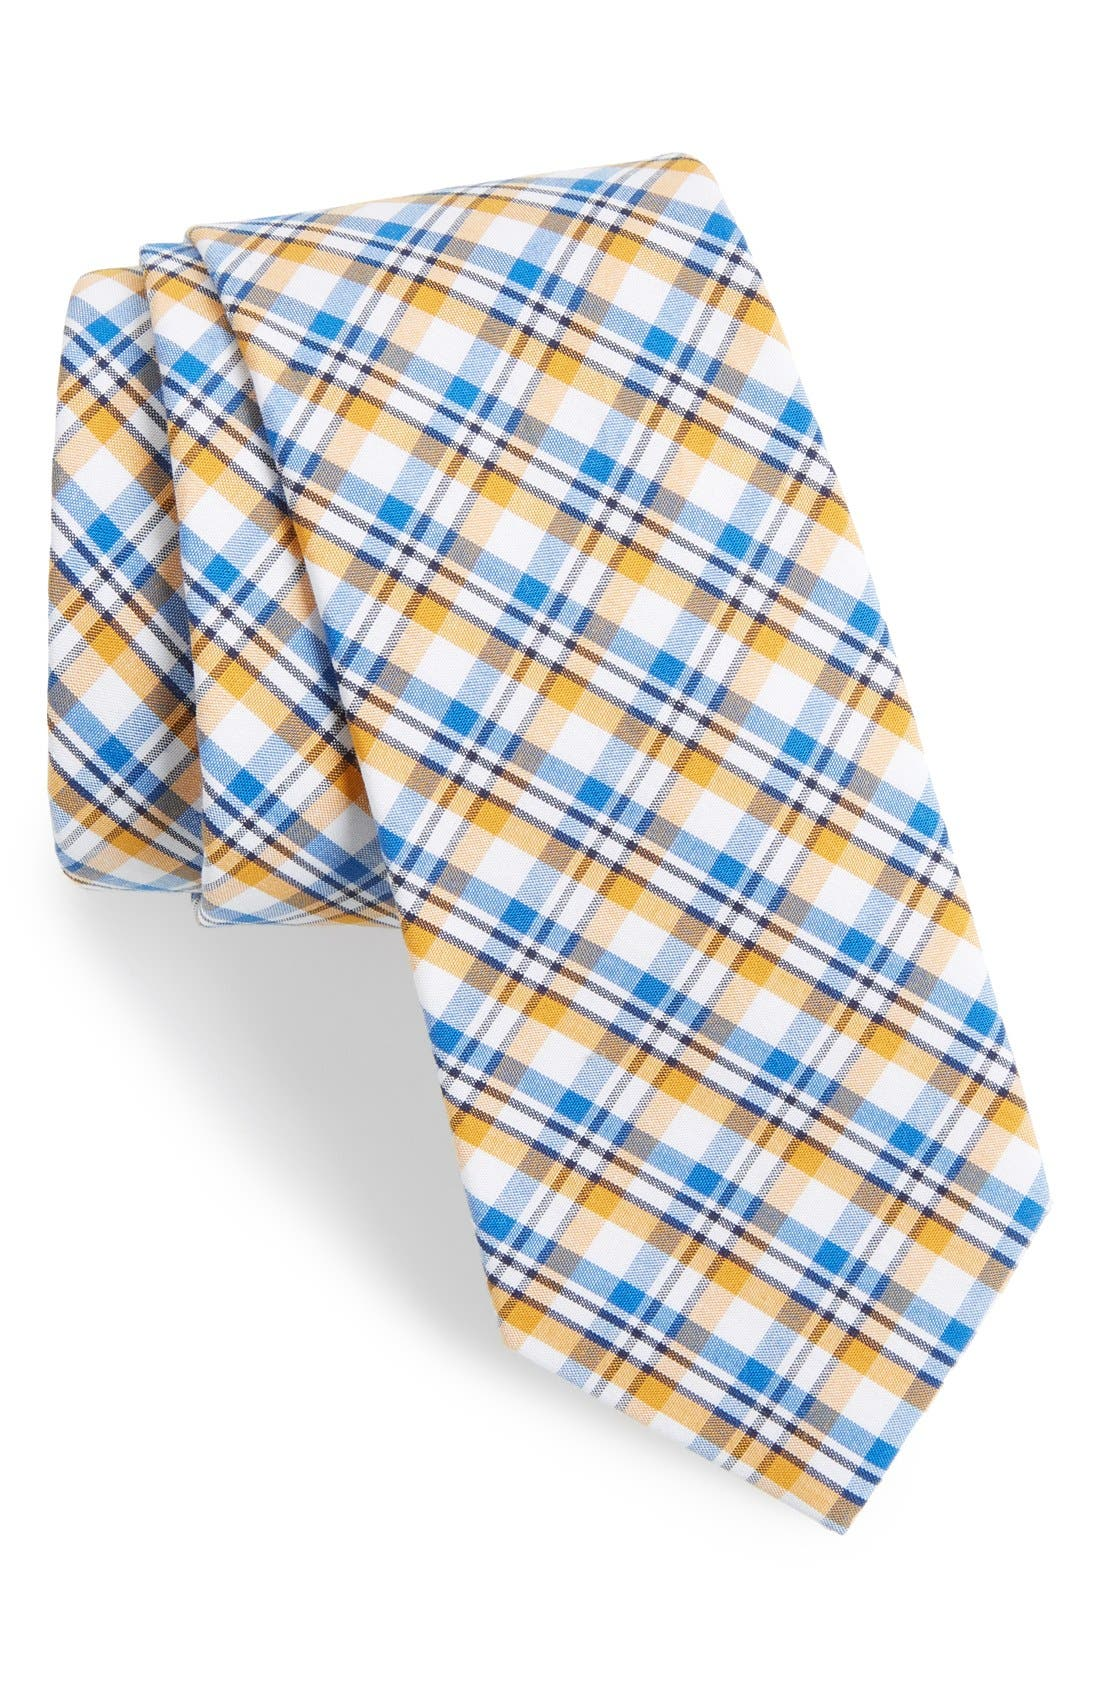 Alternate Image 1 Selected - 1901 'Boomer' Plaid Cotton Tie